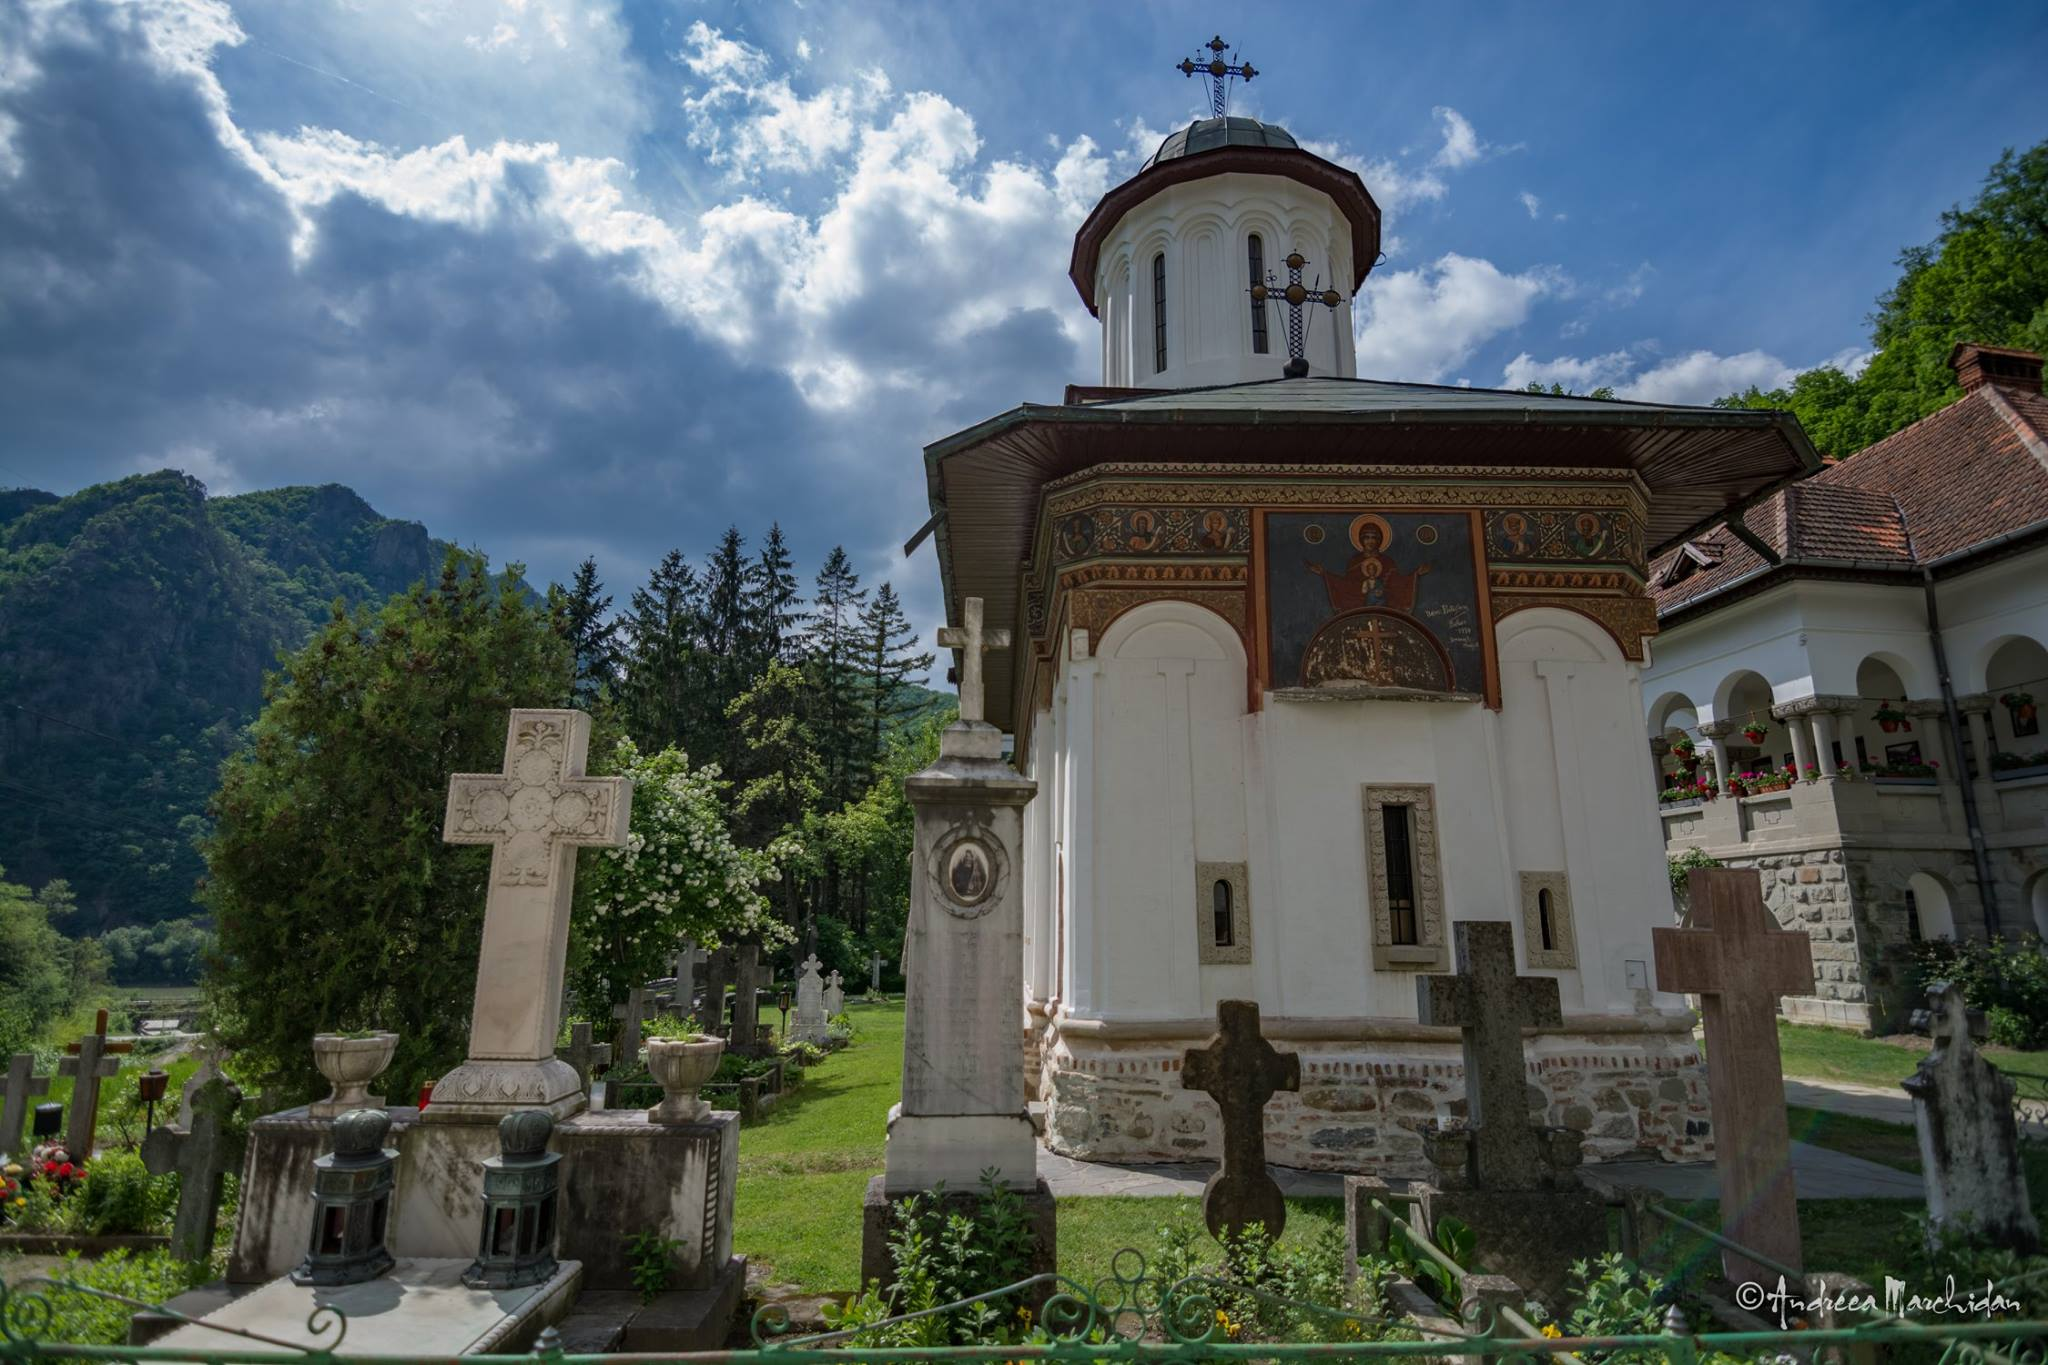 1000+ images about CHURCHES AND MONASTERIES on Pinterest.